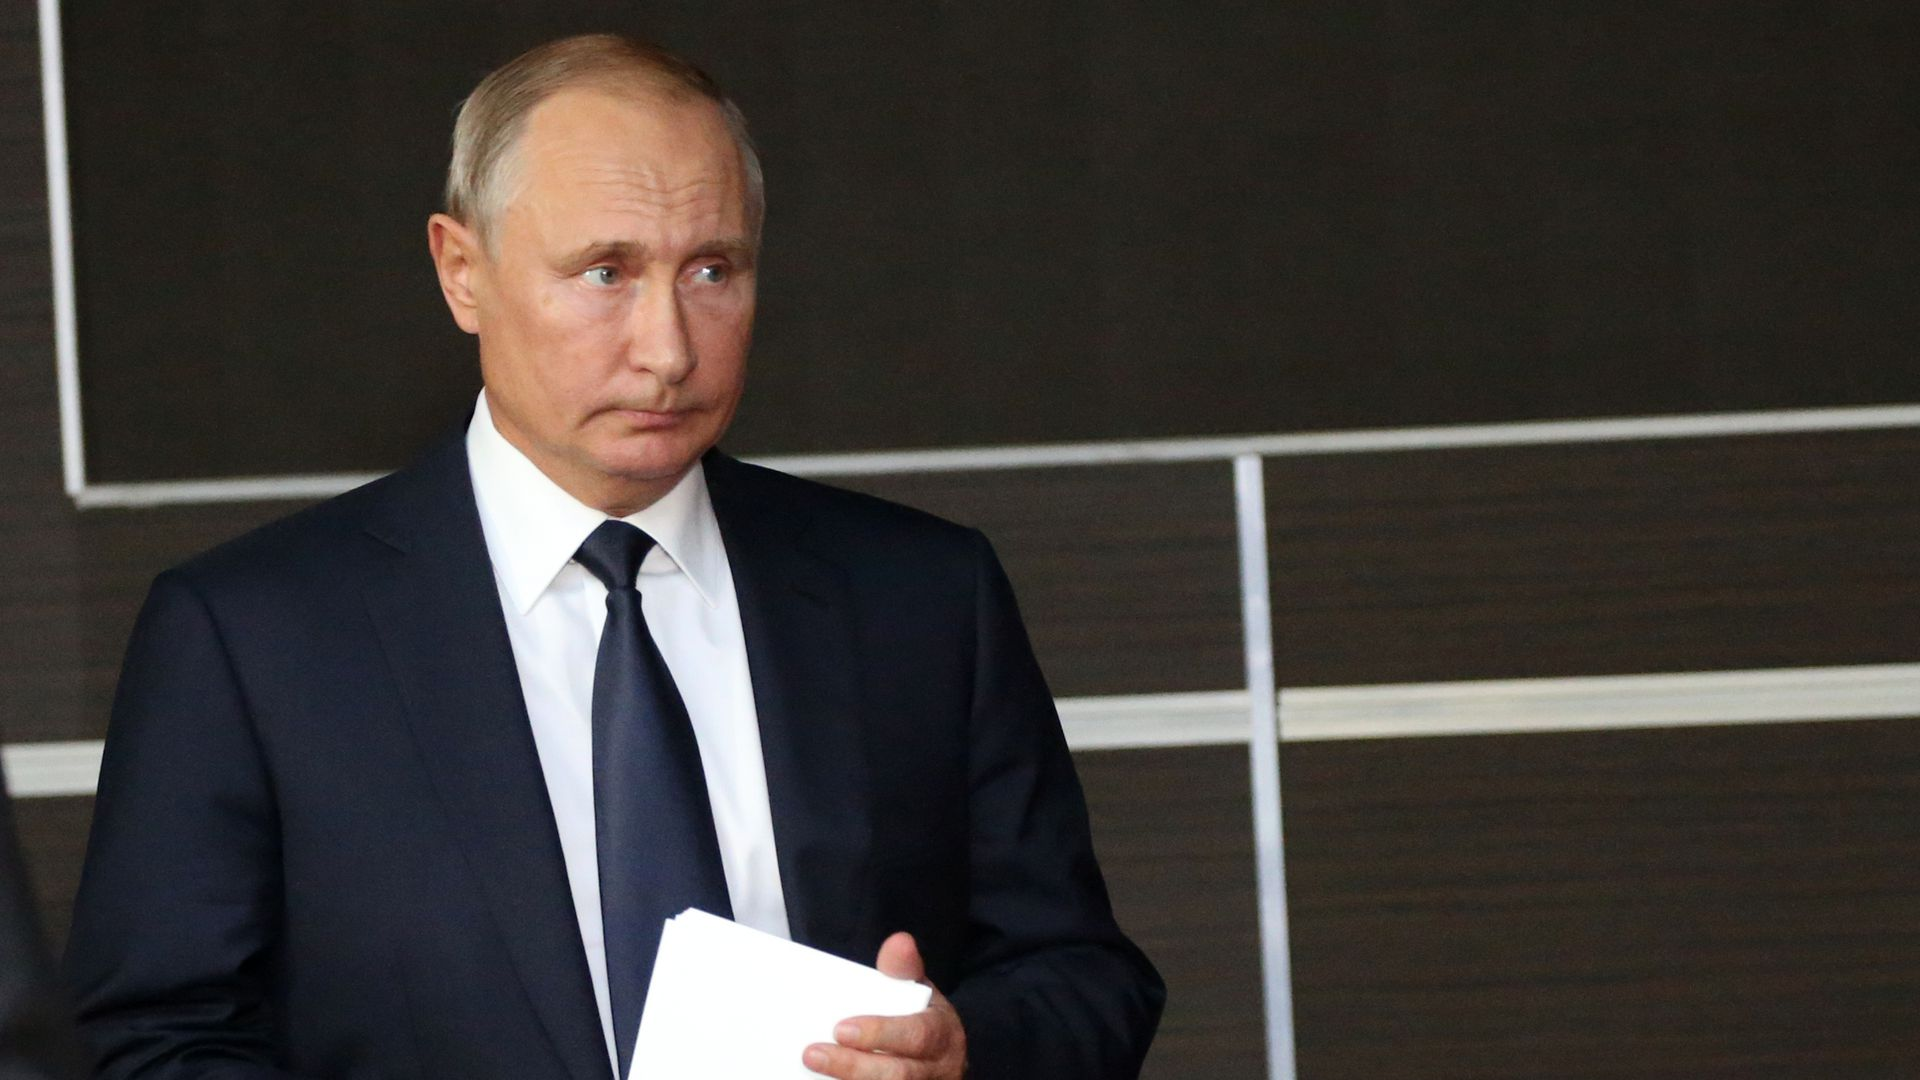 Vladimir Putin looks concerned and sad